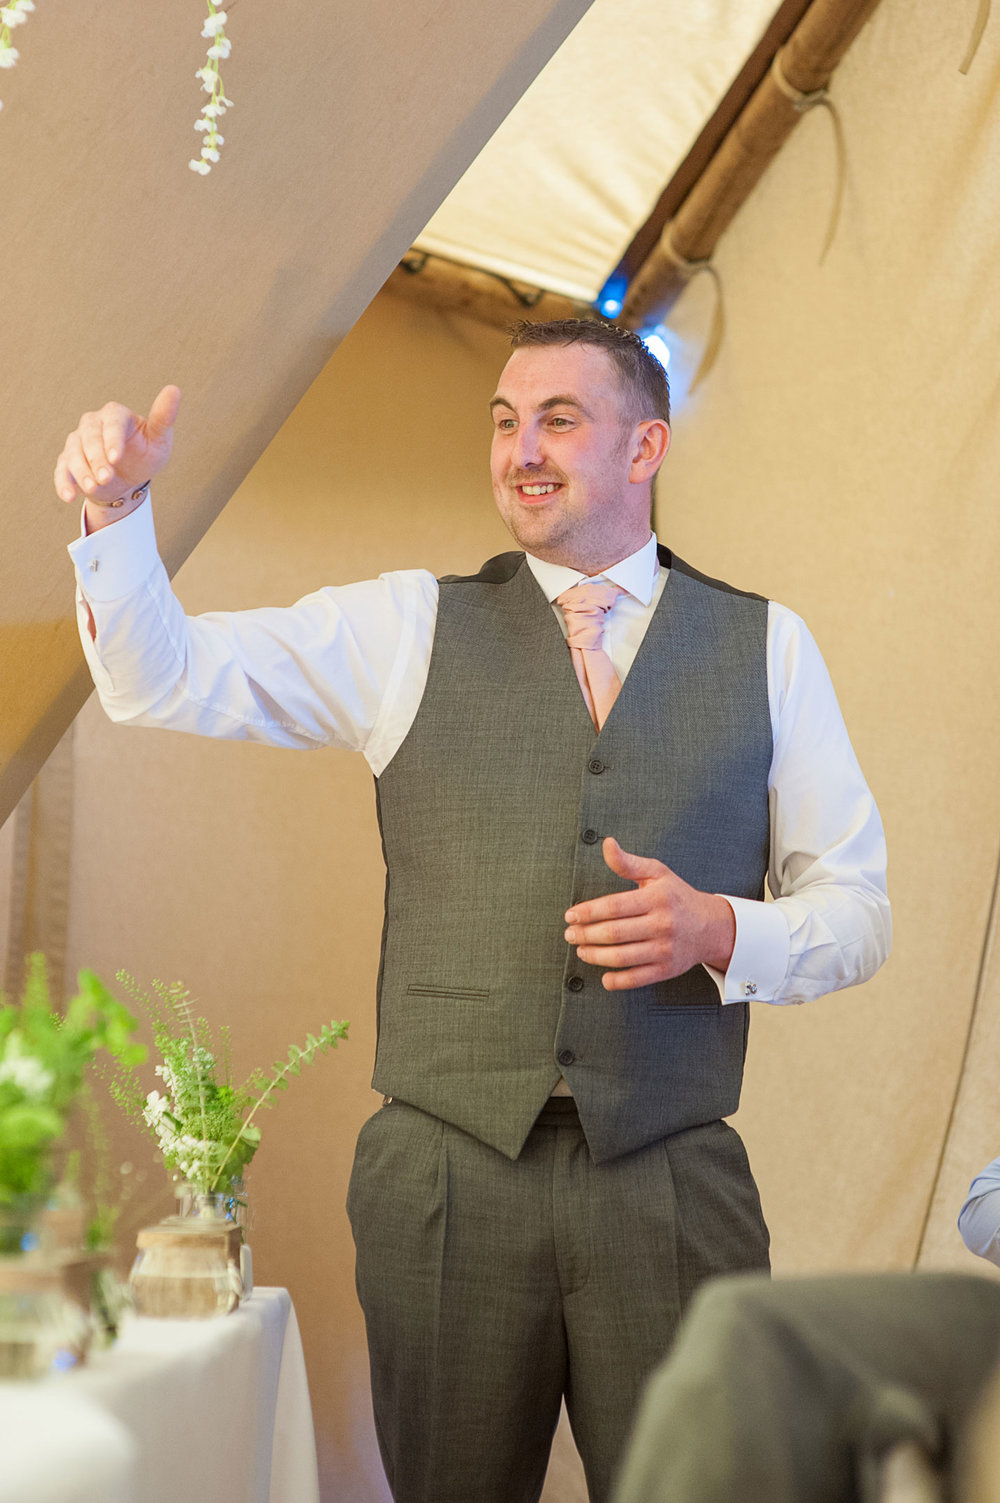 Teepee-wedding-Photography-Lancashire (152).jpg